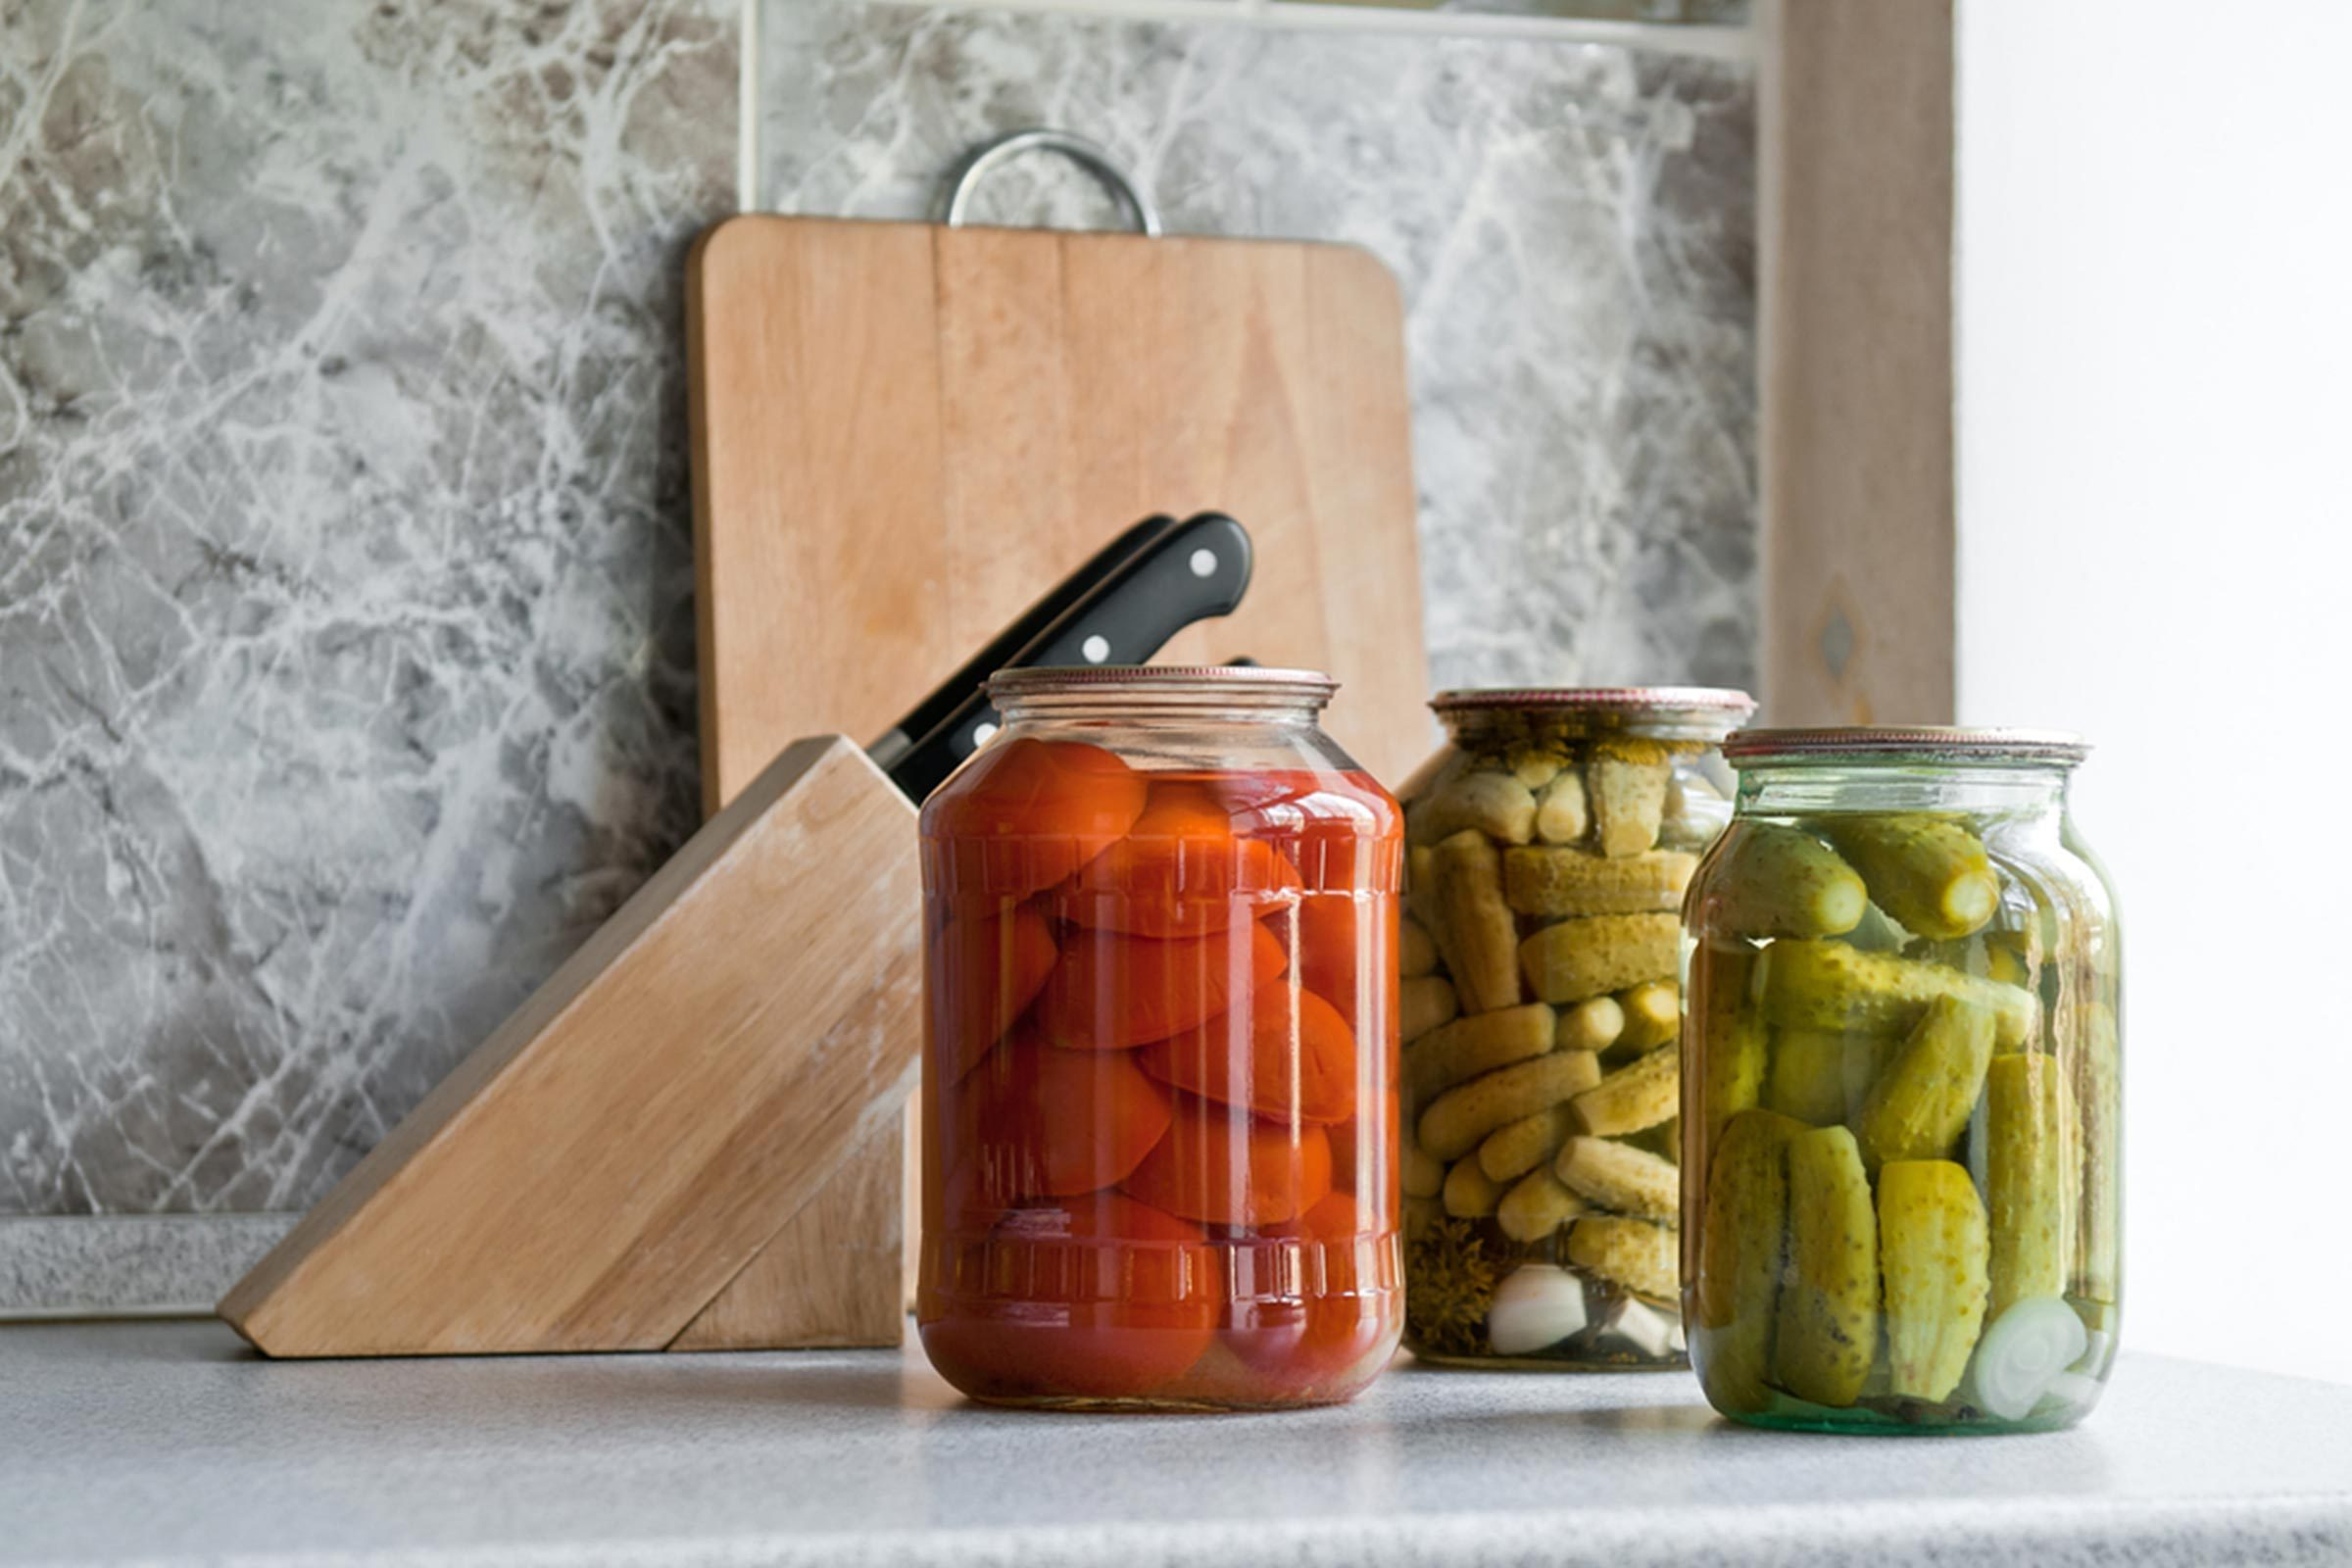 jars of pickled vegetables on a kitchen counter